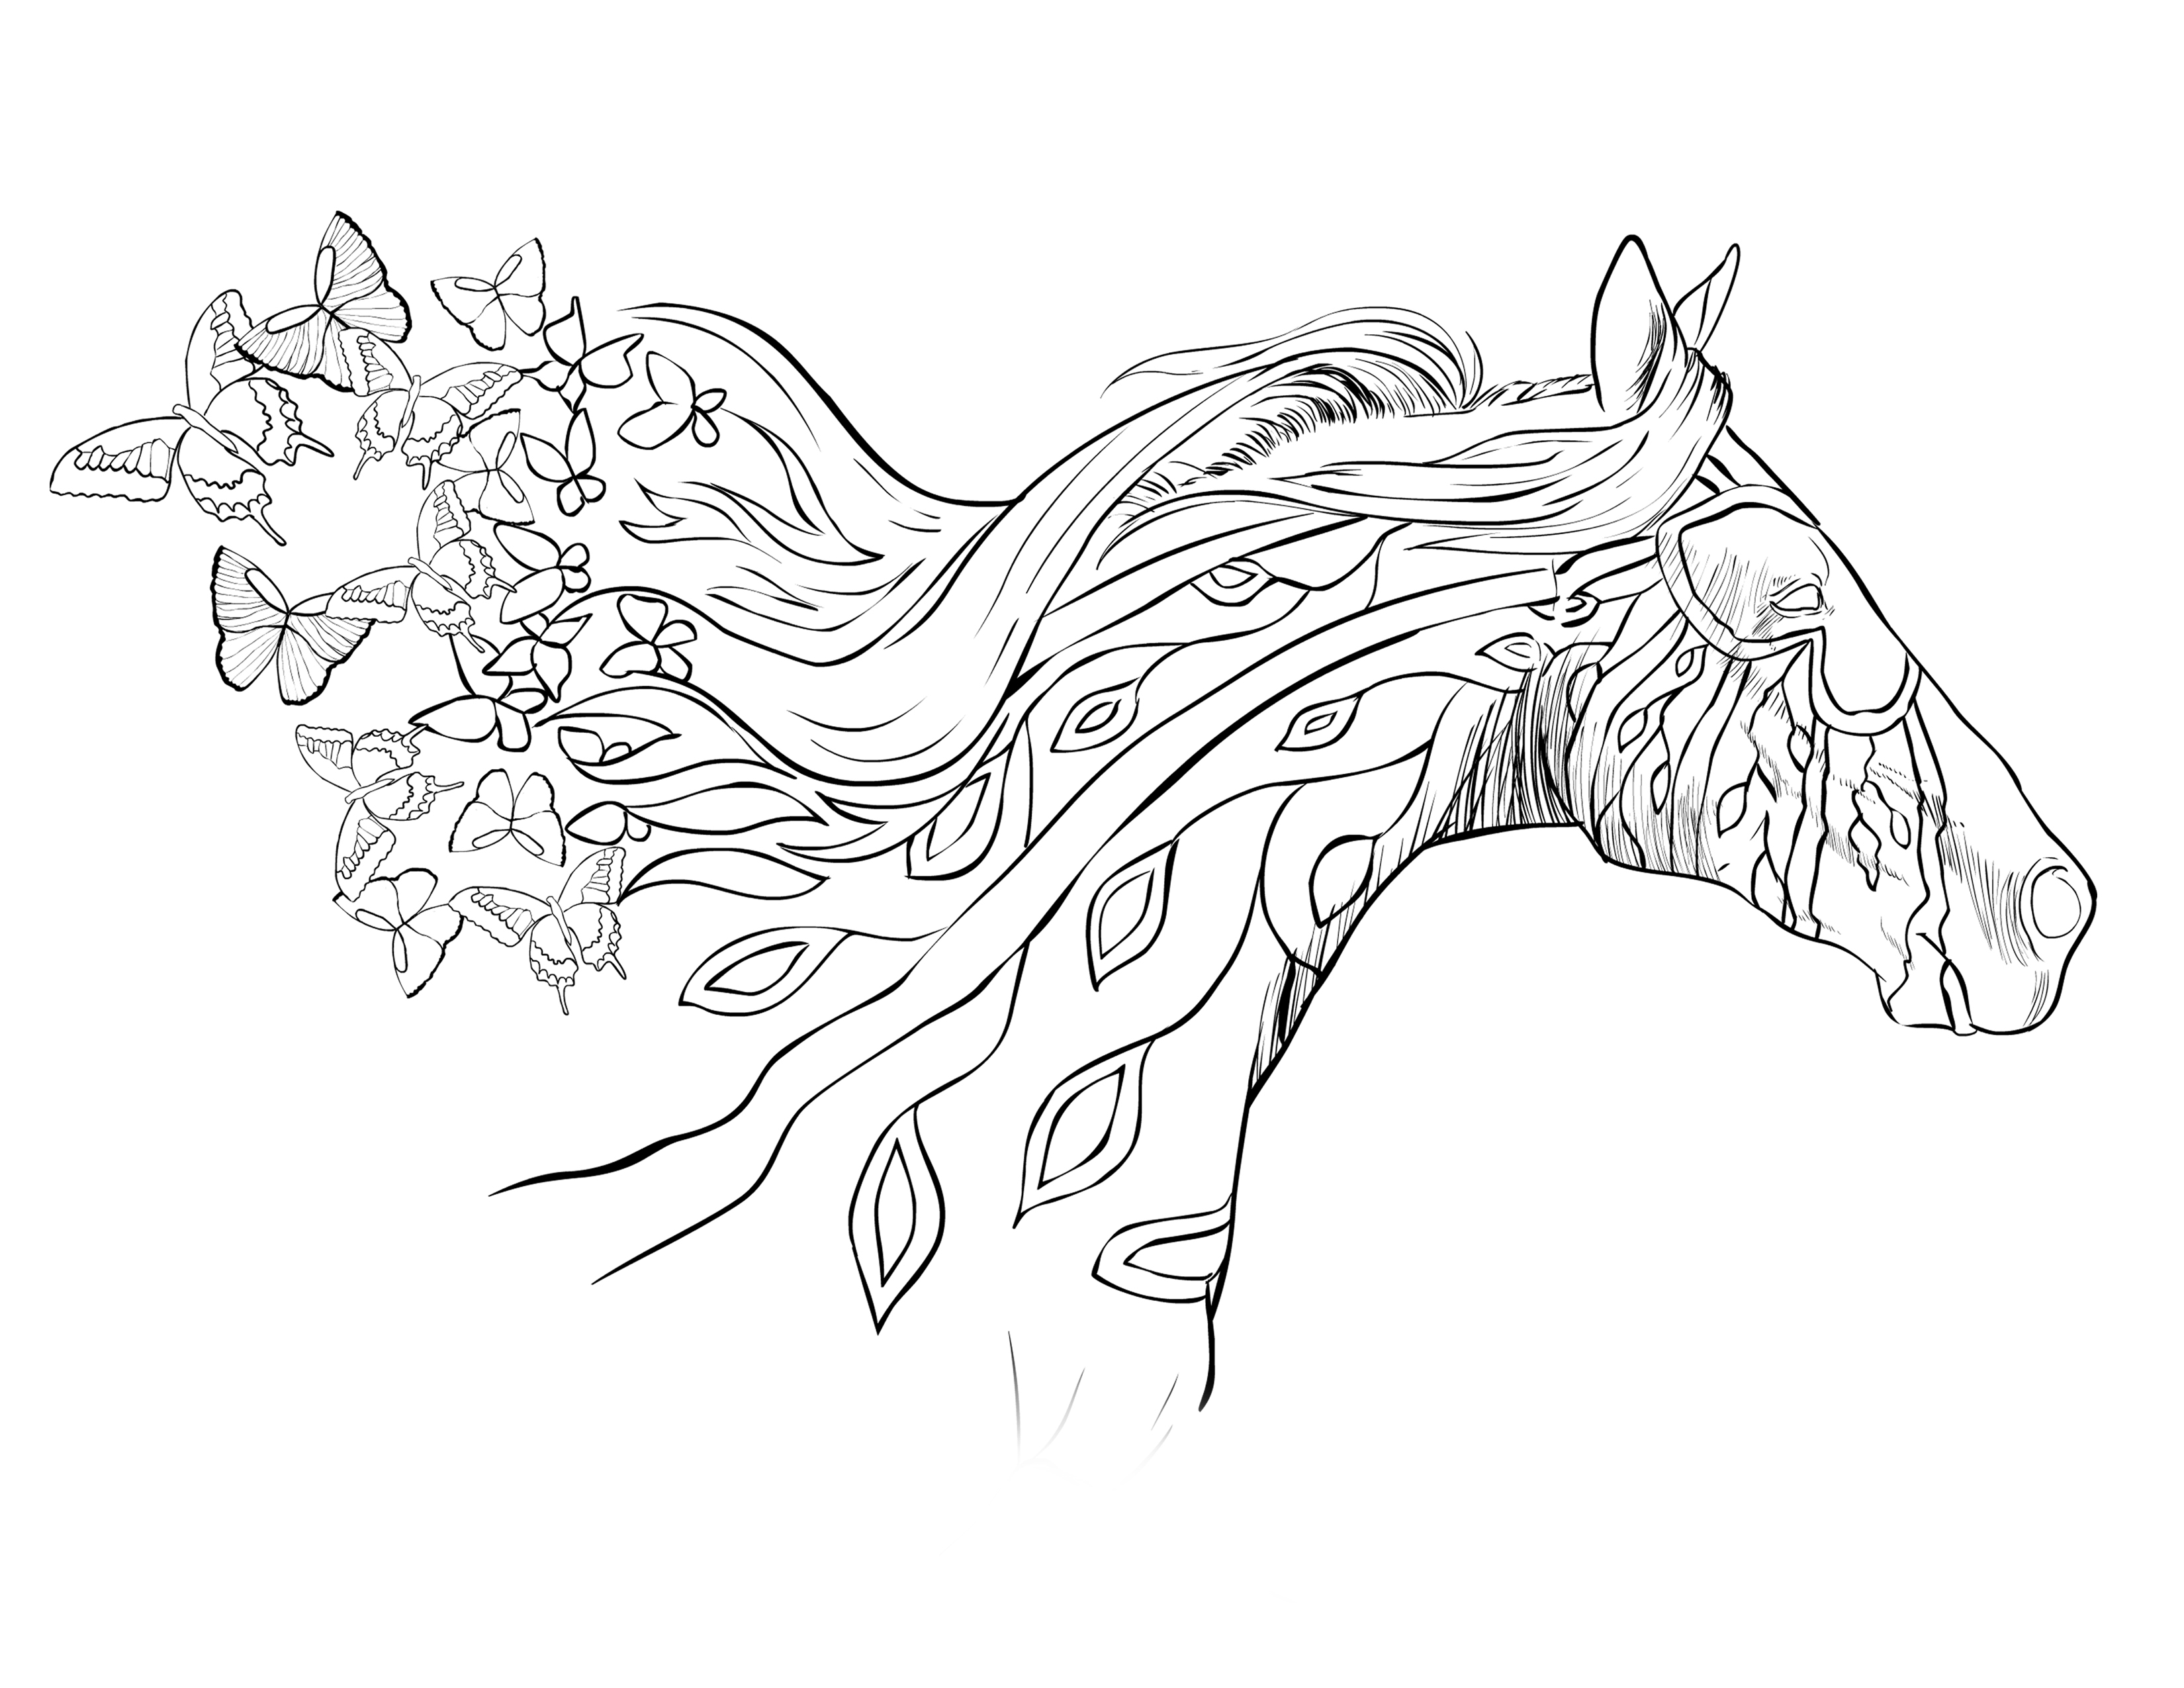 coloring pages of horses to print fun horse coloring pages for your kids printable of pages to print coloring horses